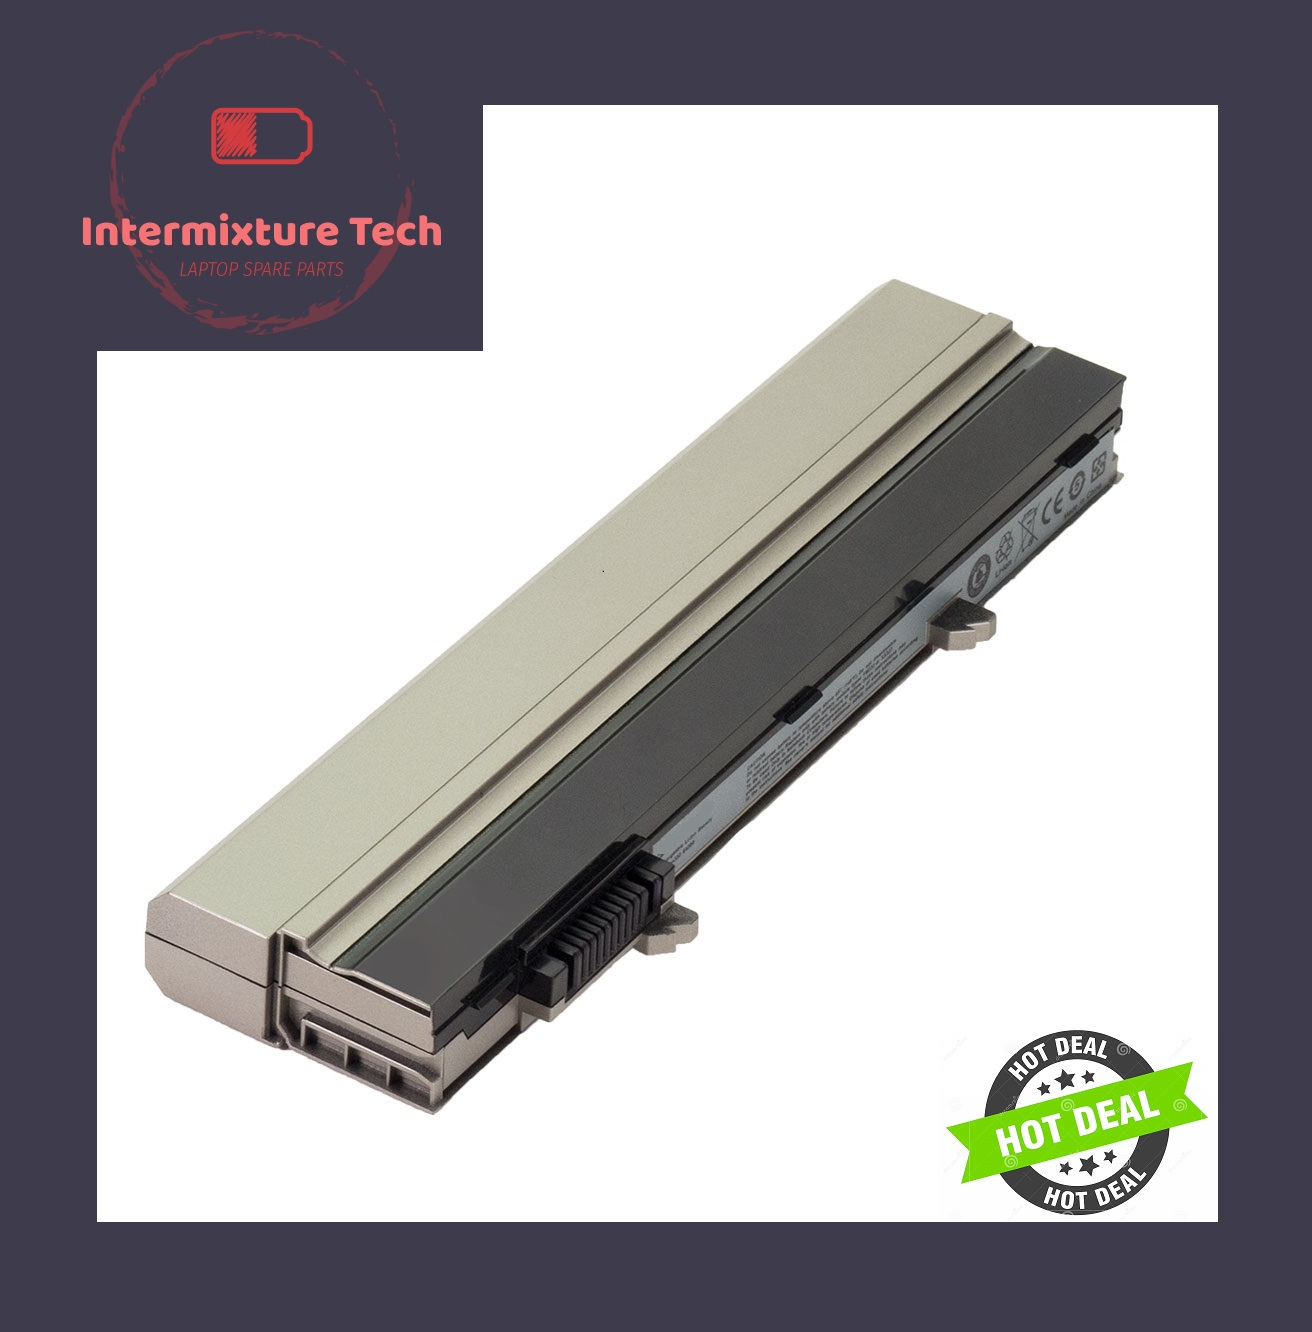 Dell Latitude E4300 E4310 E4320 E4400 0FX8X 8N884 8R135 H979H BATTERY